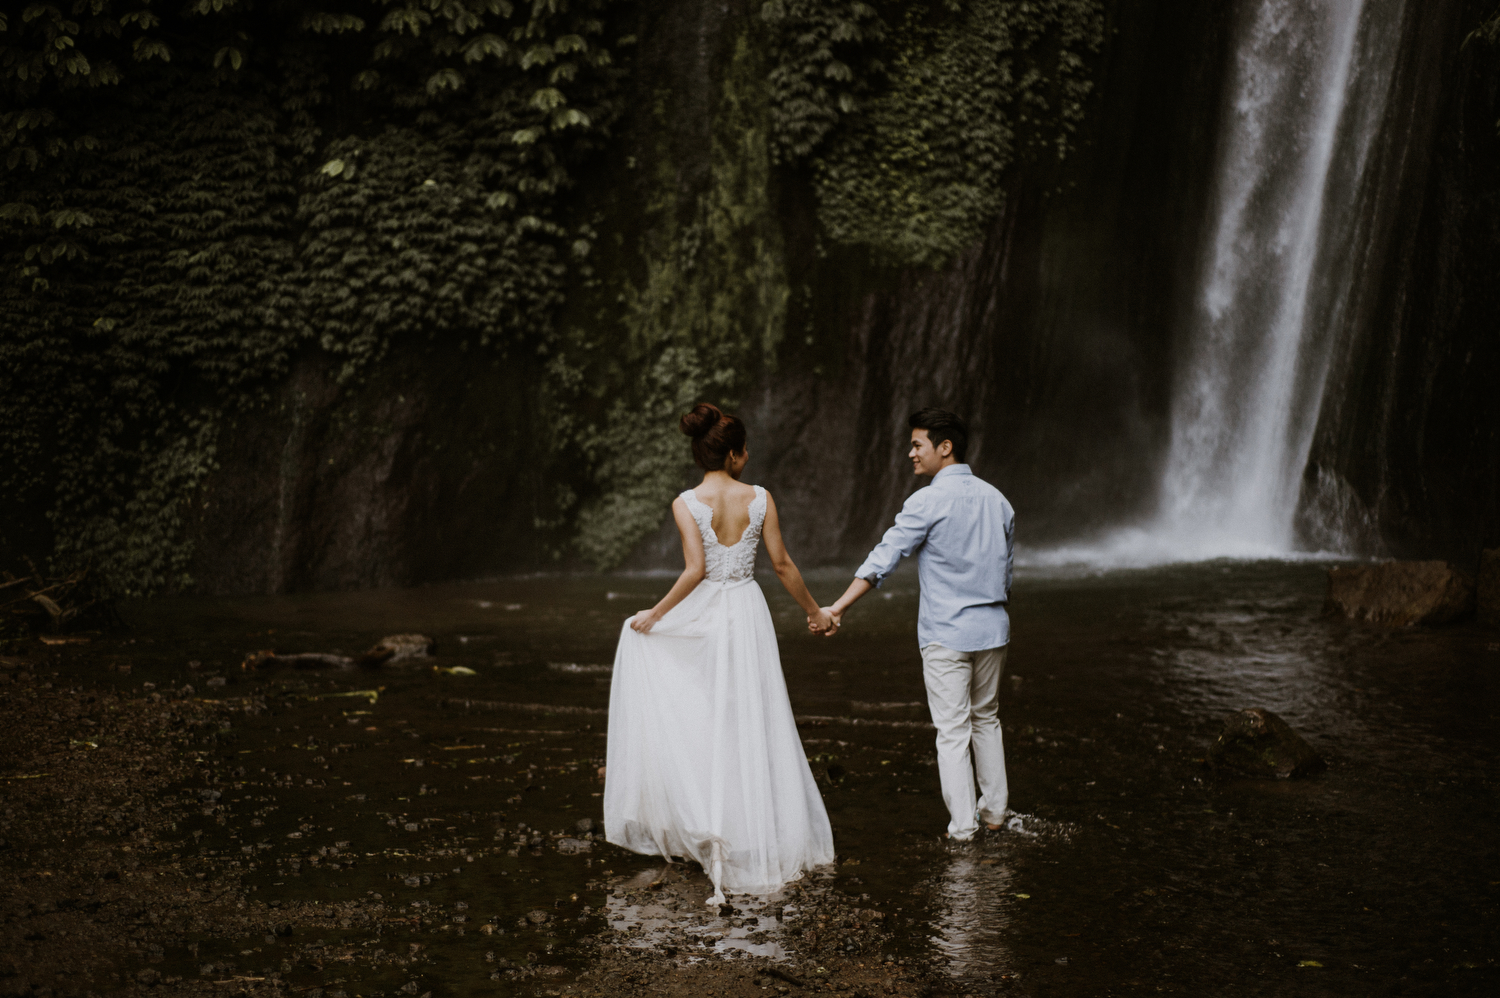 preweddinginbali-bali-batur-ubud-diktatphotography-engagemnet-baliweddingphotographer-weddinginbali-32